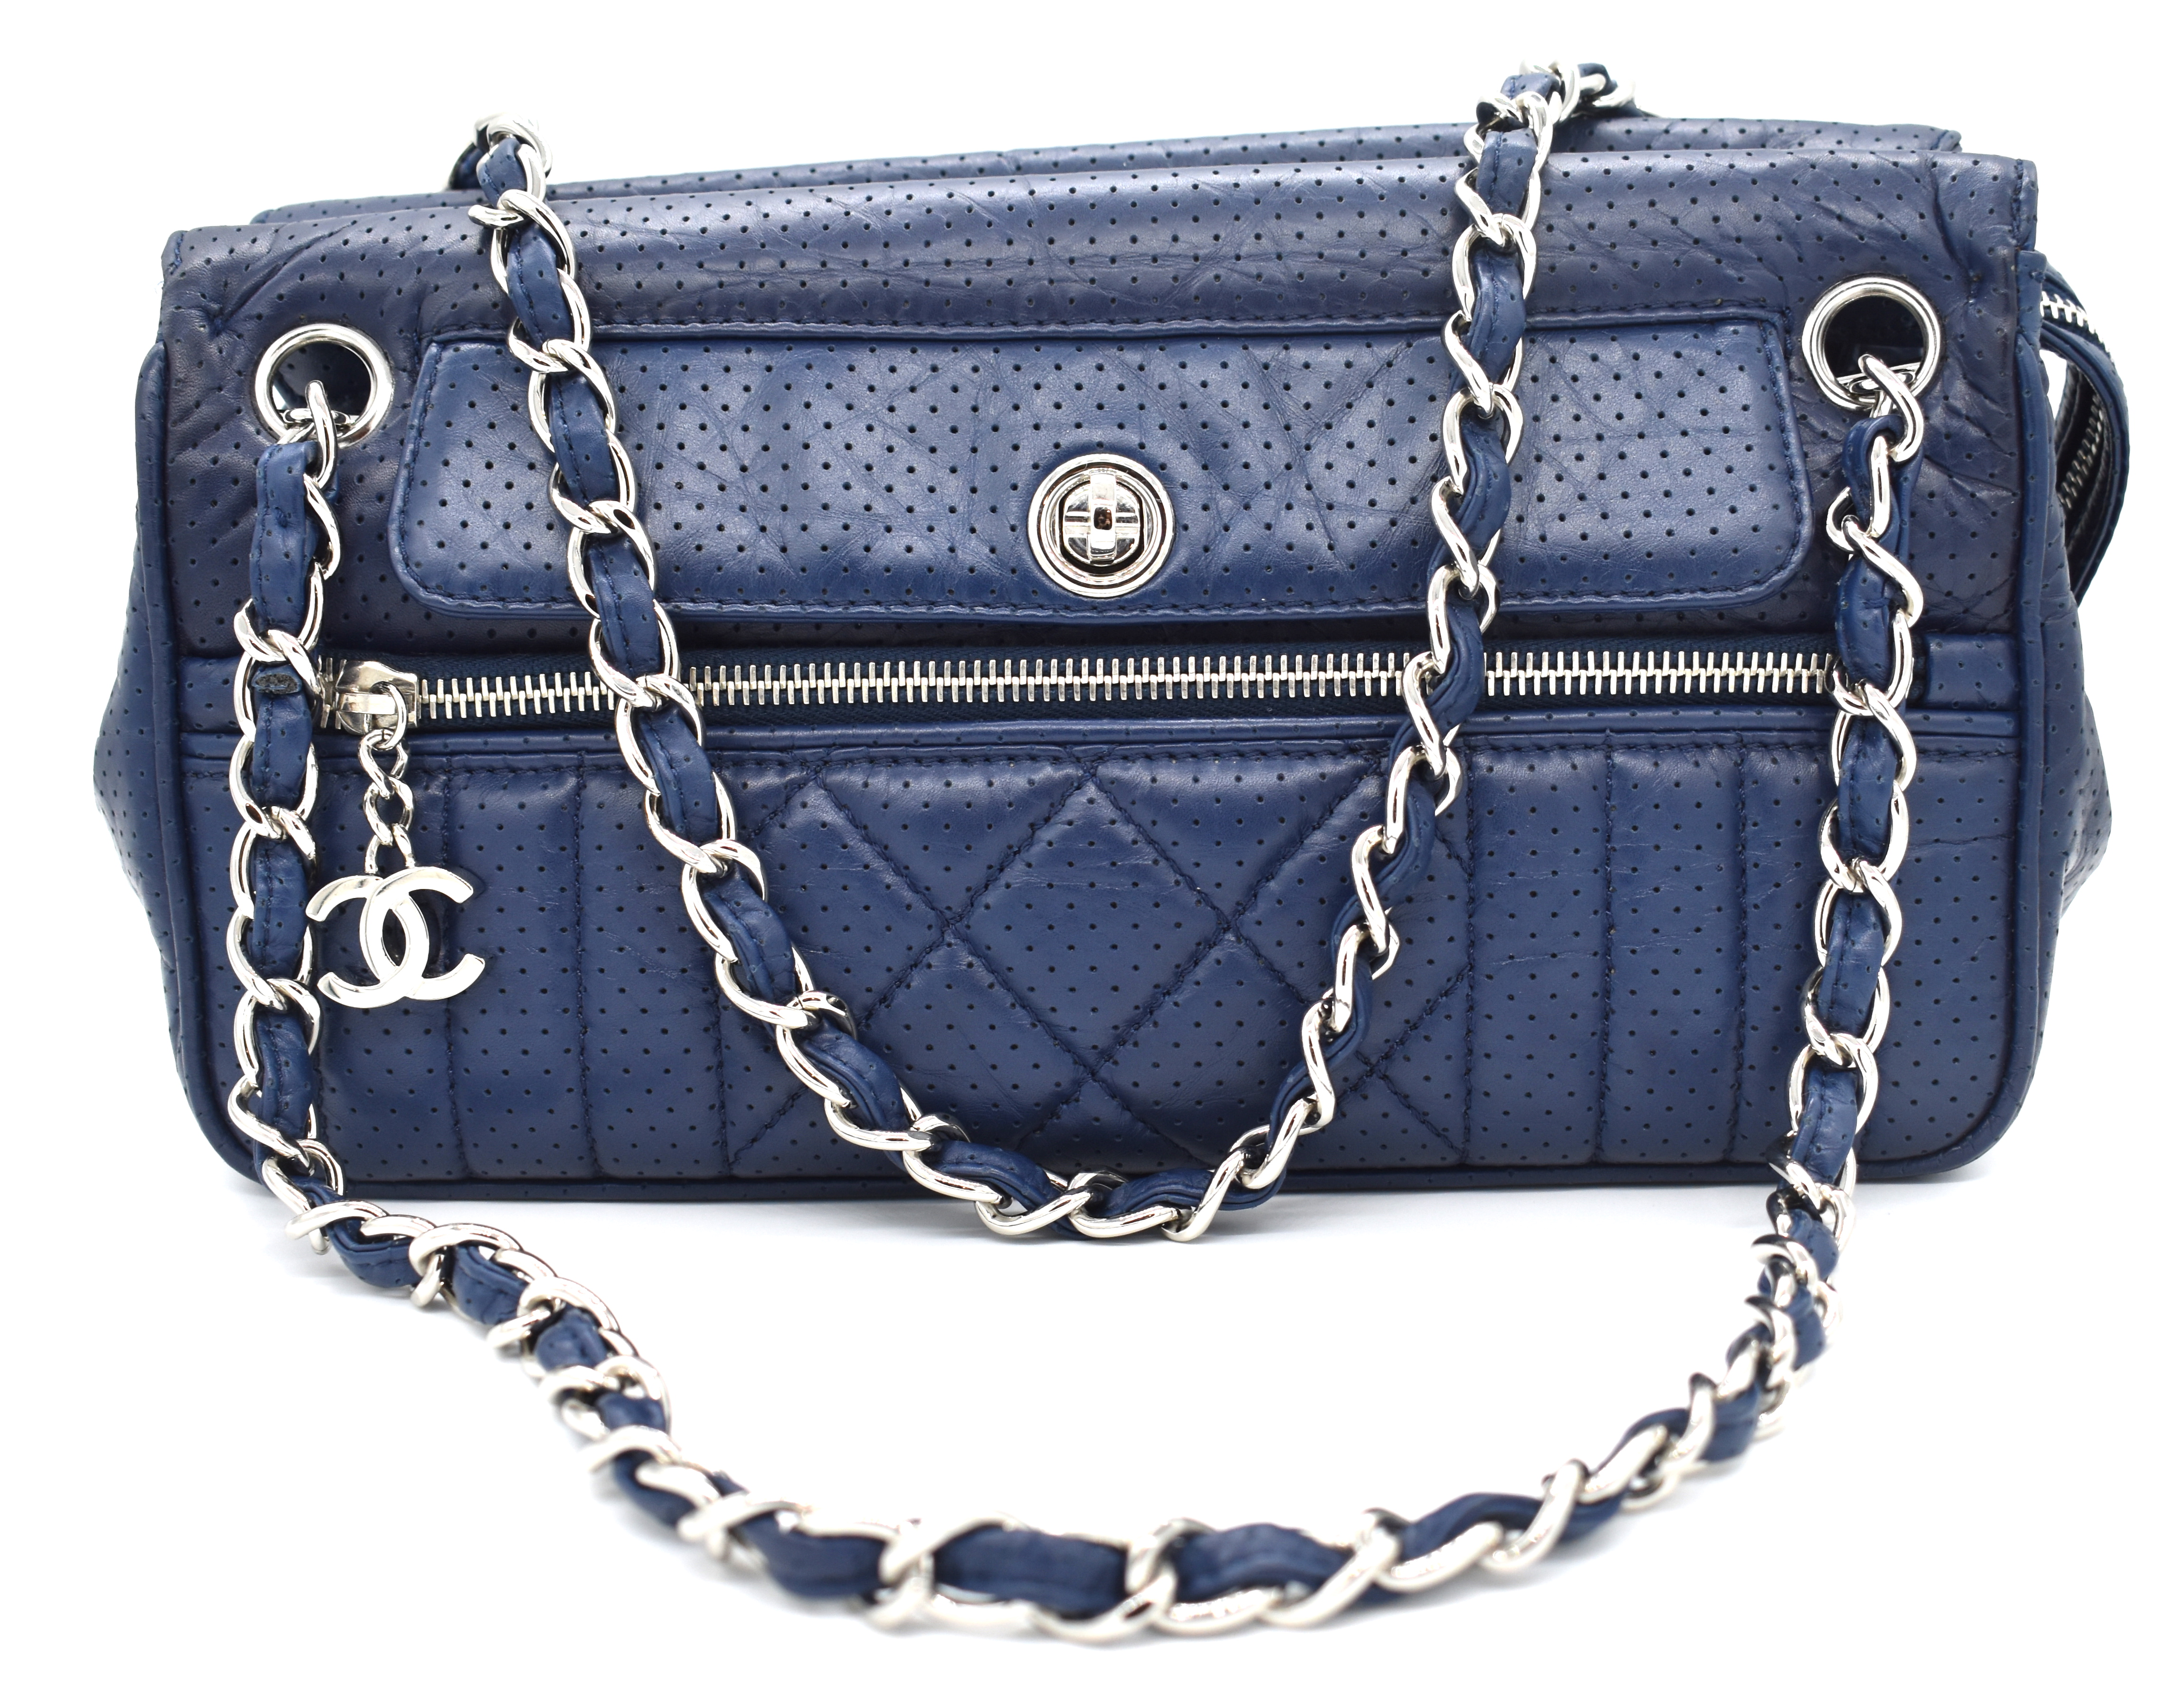 c5be36d87dae Chanel Navy Blue Perforated Leather Shoulder Bag – DesignerShare